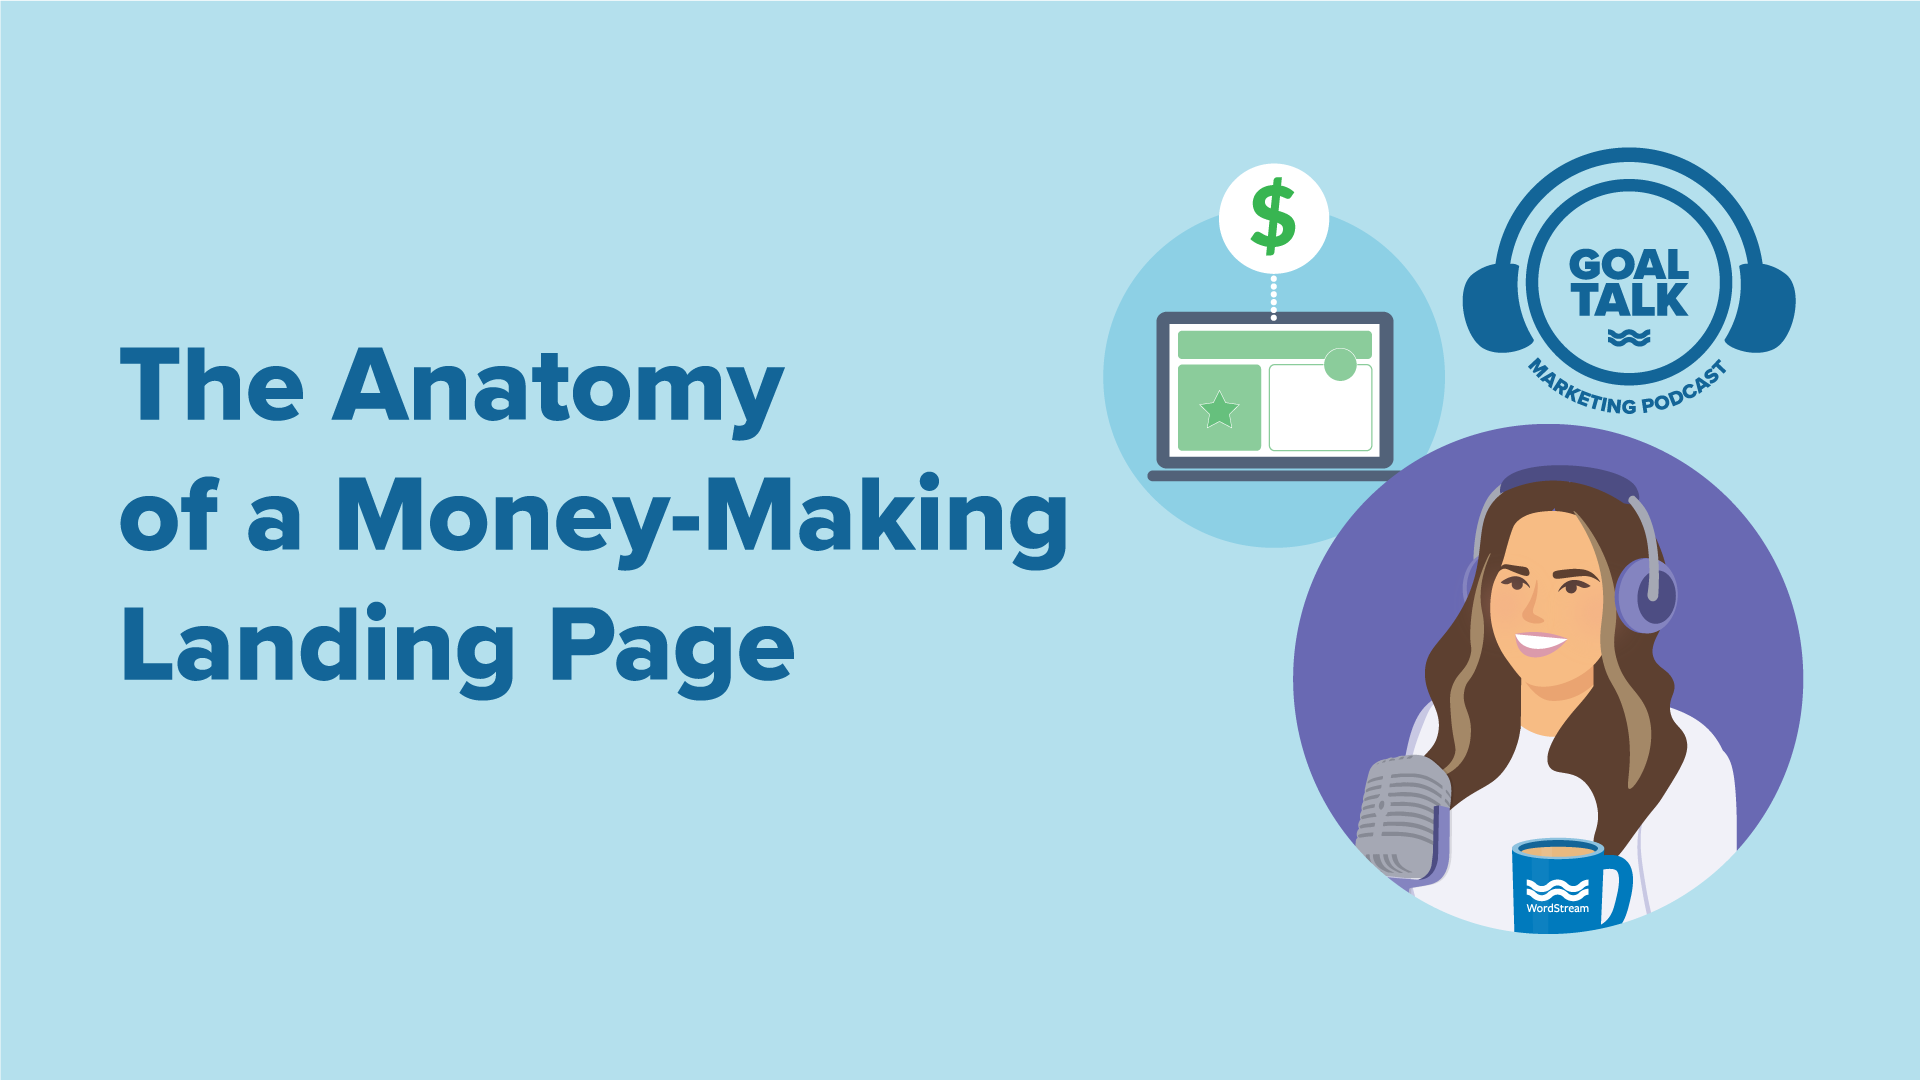 Goal Talk Podcast Episode 13: The Anatomy of a Money-Making Landing Page